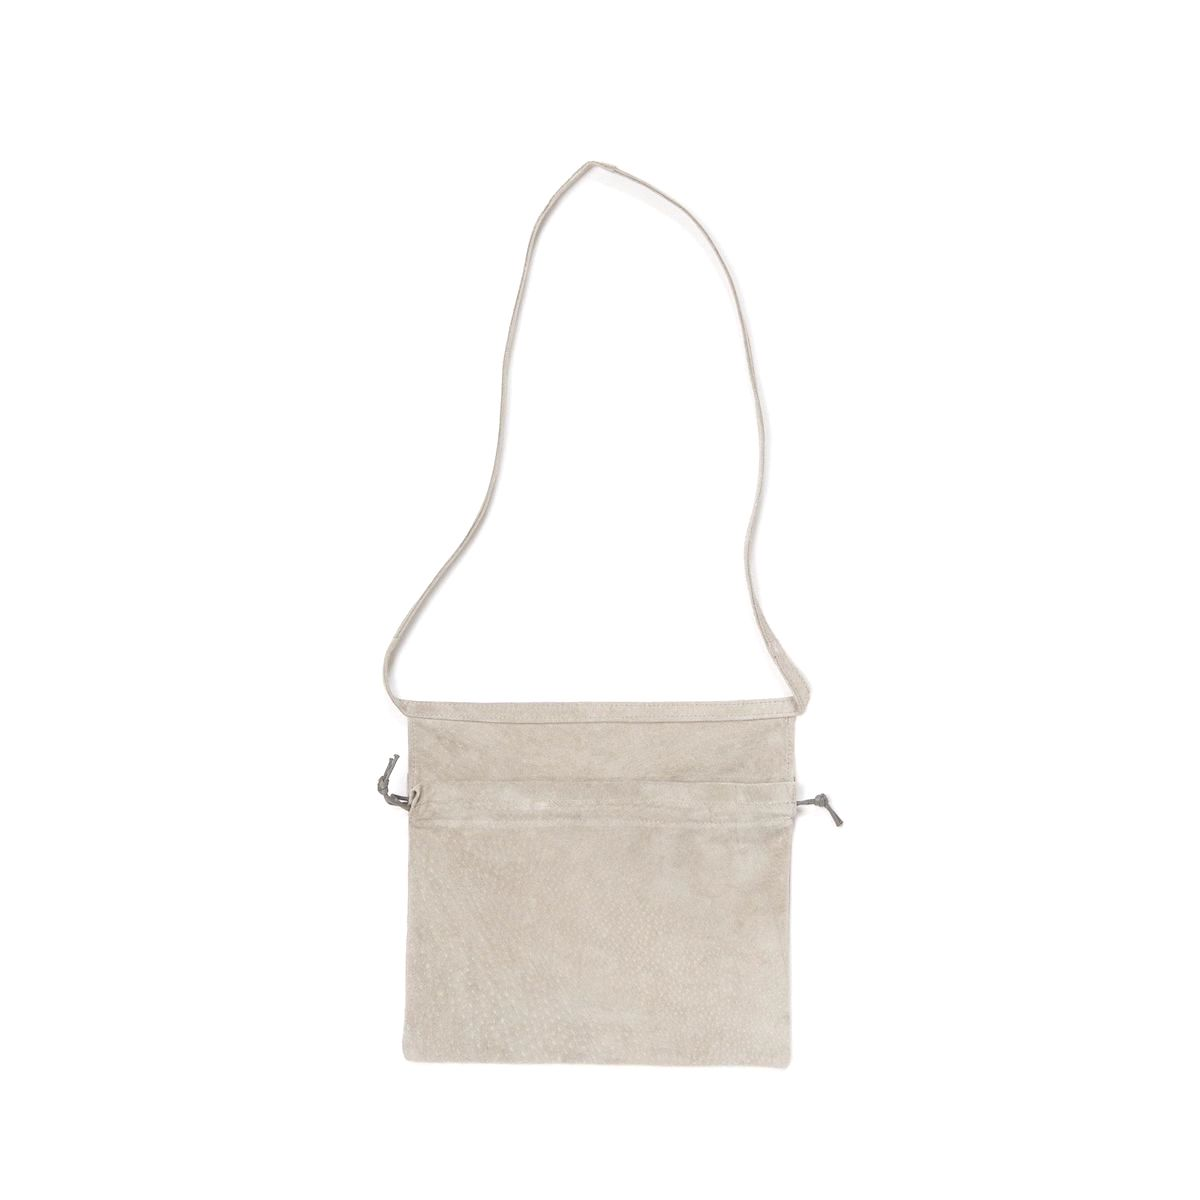 Hender Scheme / red cross bag small Light Gray